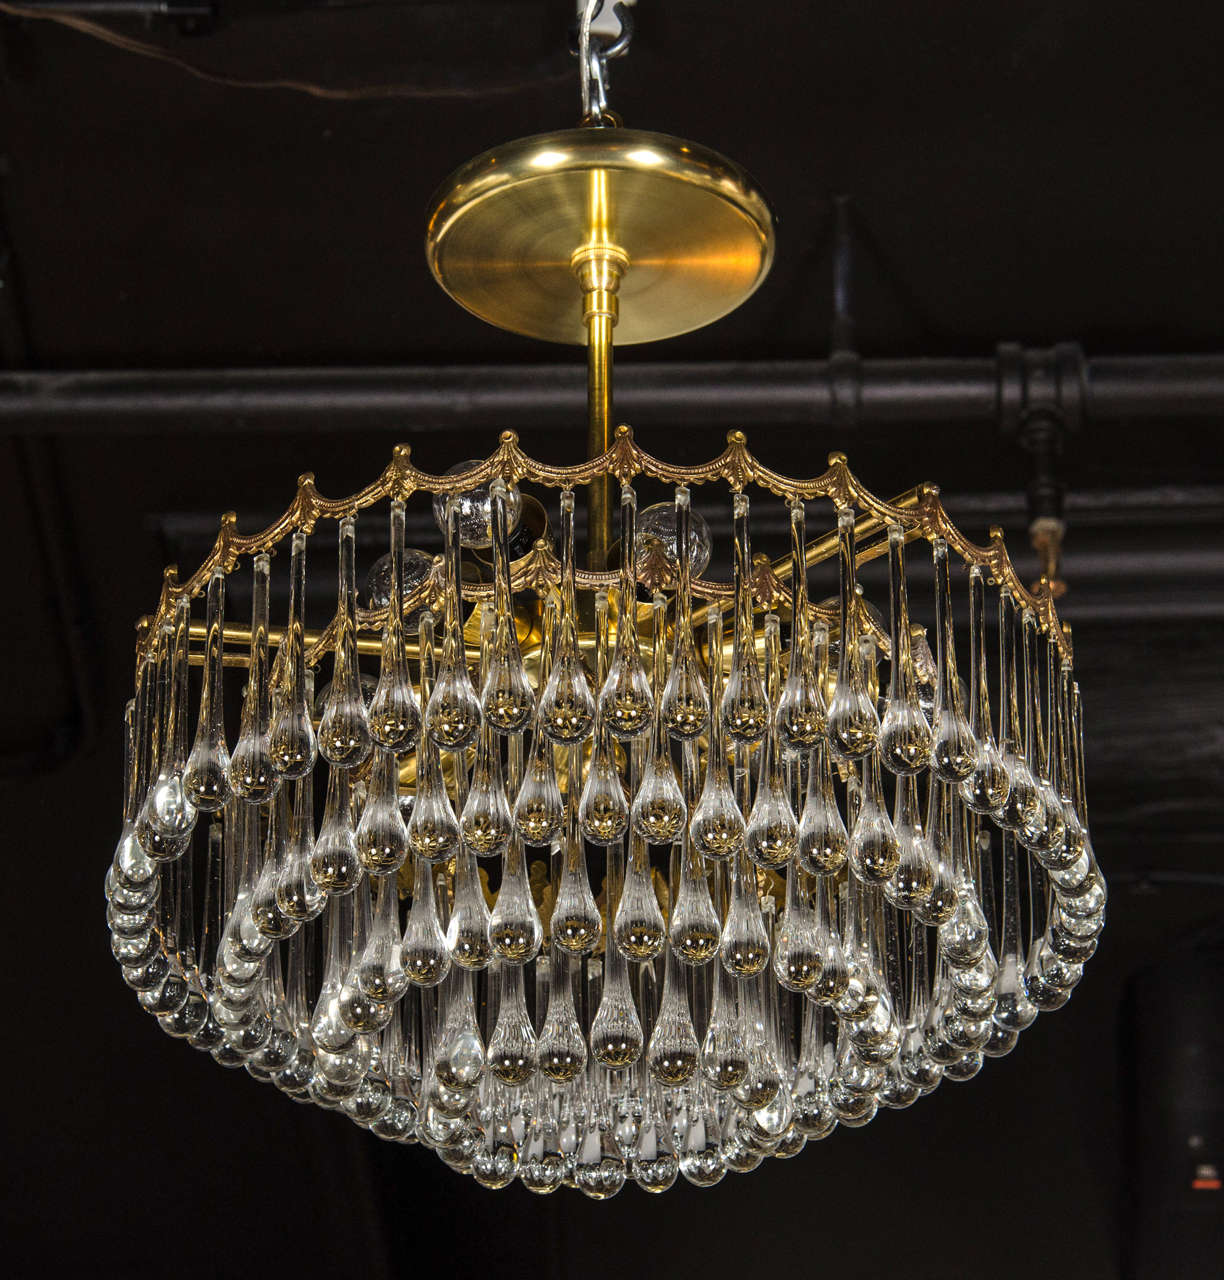 1940s hollywood four tier teardrop chandelier with brass scalloped elegant 1940s hollywood regency four tier chandelier featuring a brass frame of four tiers that aloadofball Image collections